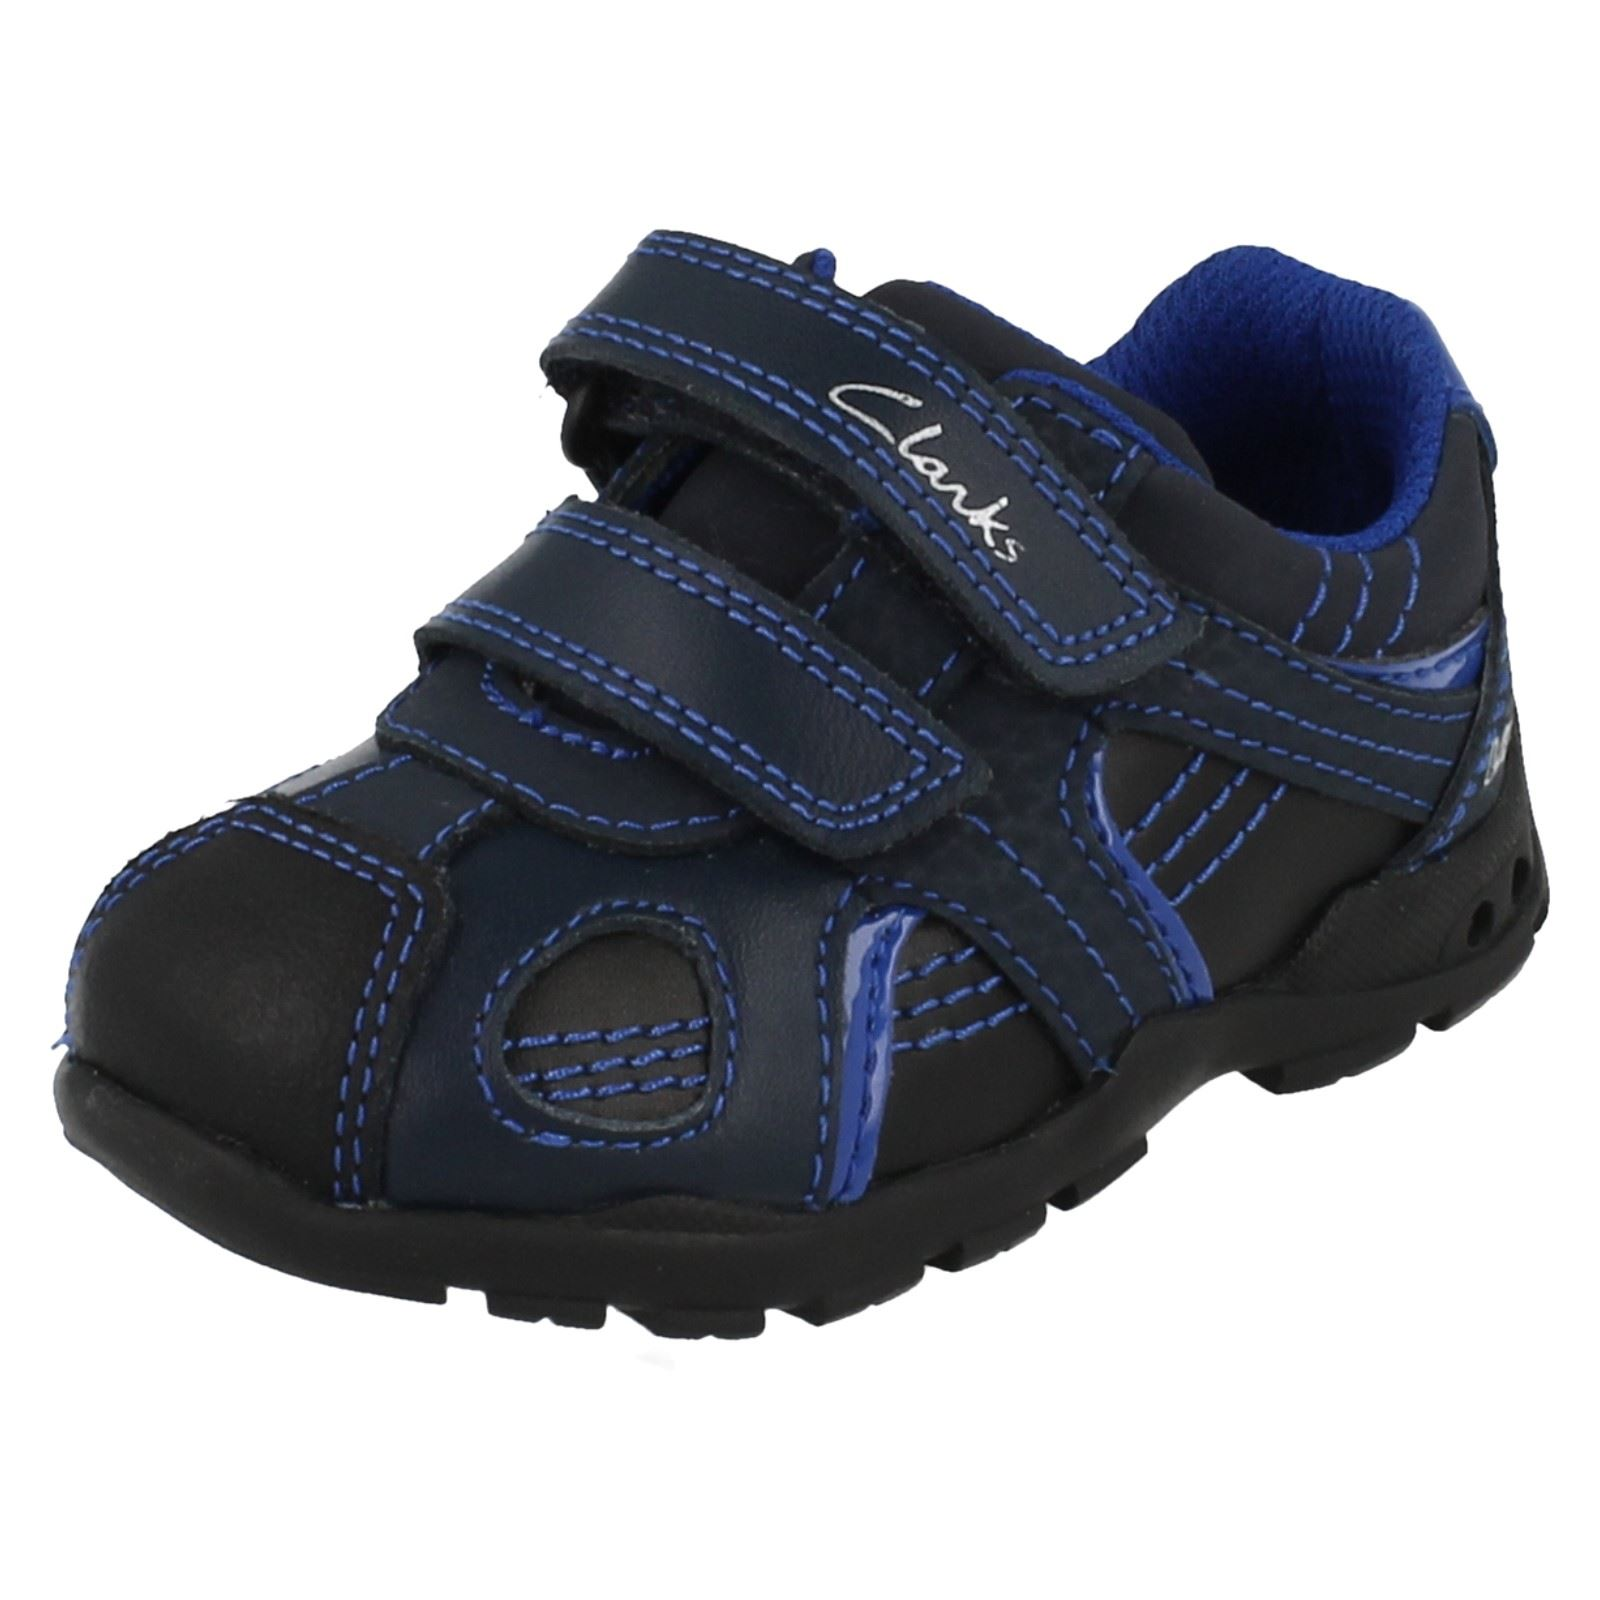 Boys Clarks Light Up Walking Shoes Brite Time